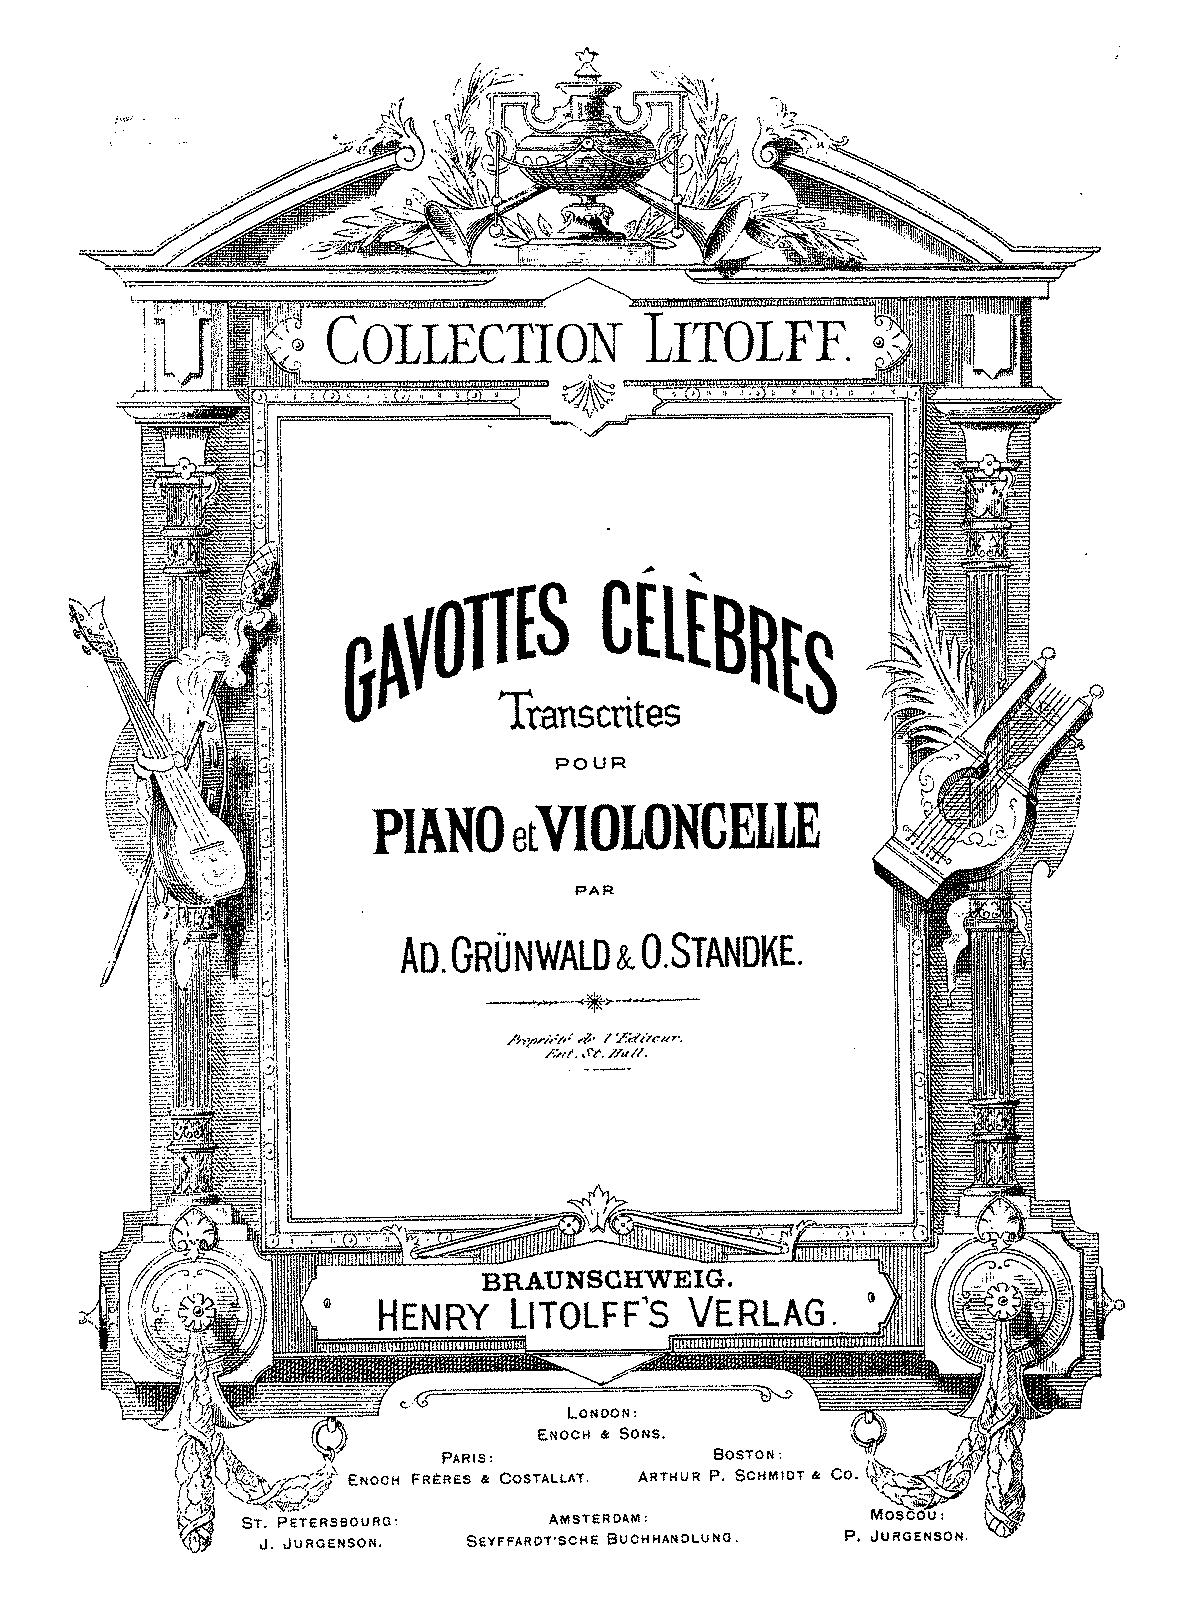 PMLP111980-Rameau - Gavotte & Rondeau OperaBallet Les Talents Lyriques (Grunwald e Standke) for cello and piano.pdf